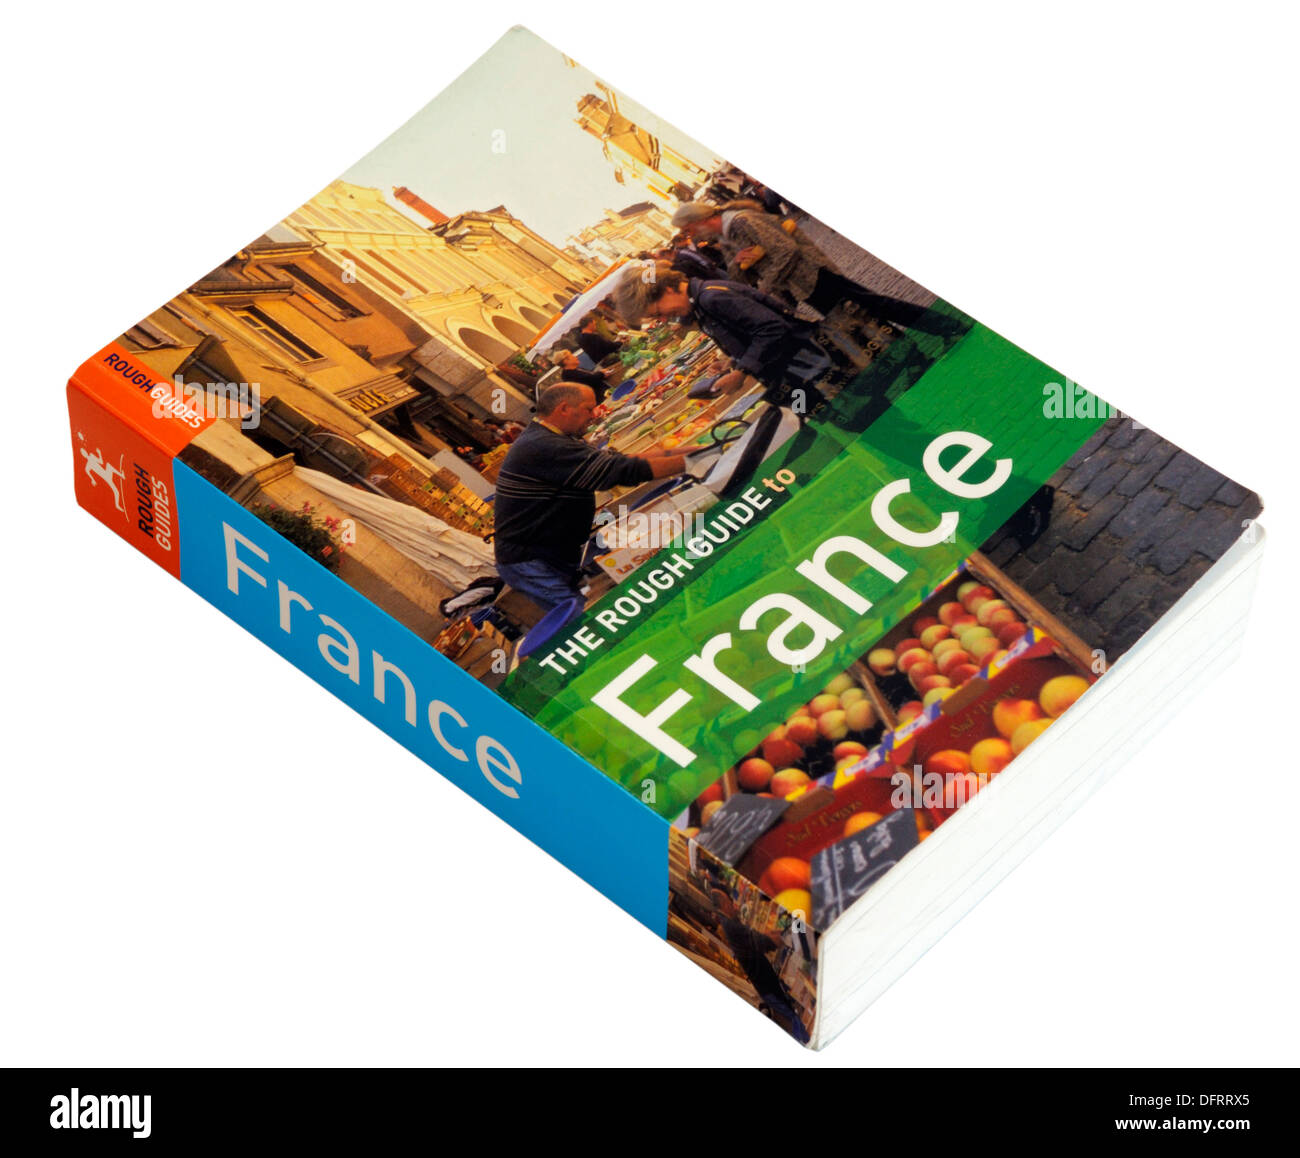 The Rough Guide to France - Stock Image